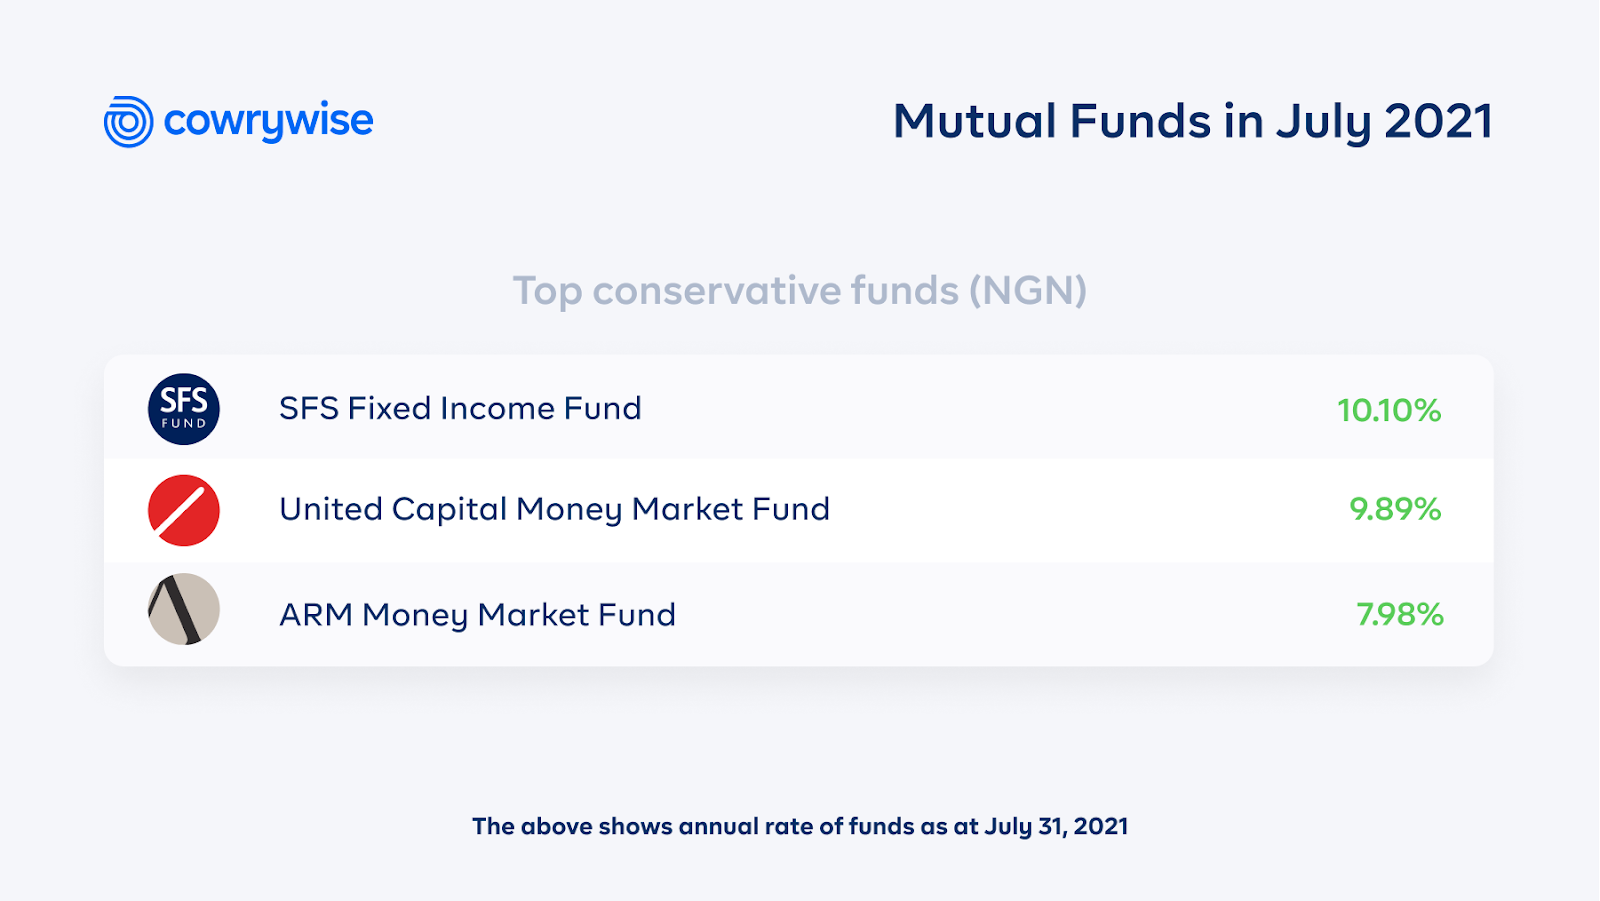 top conservative funds in July 2021